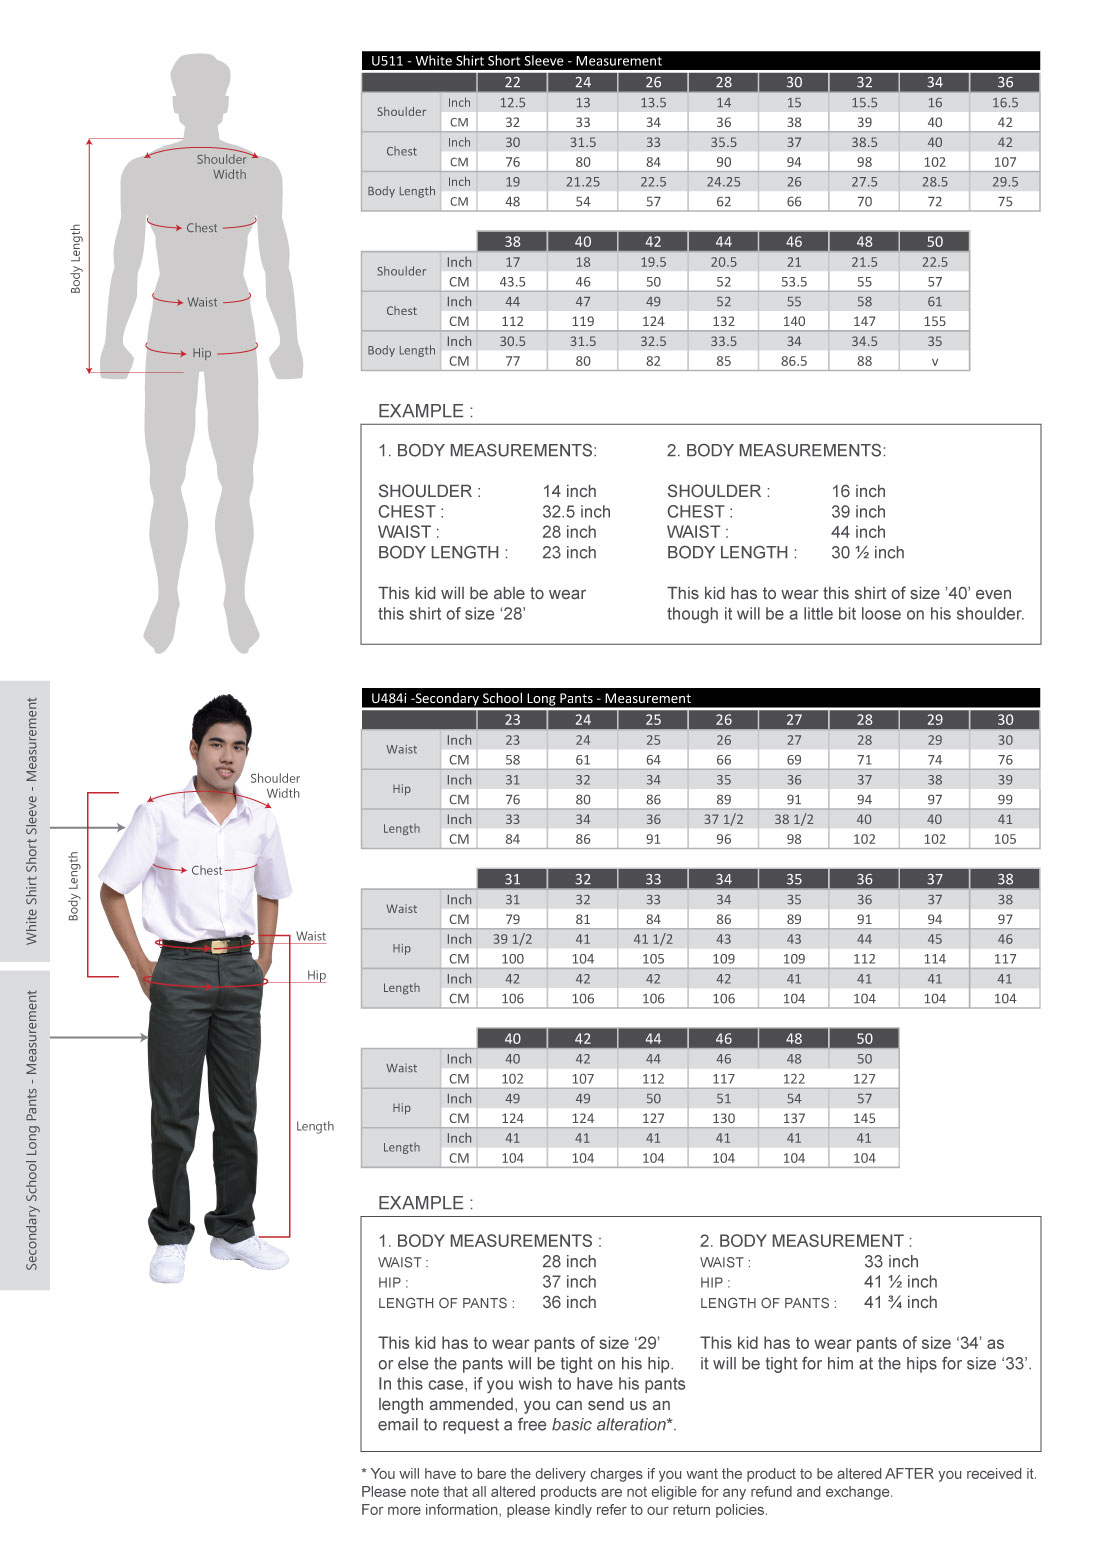 body_measurement